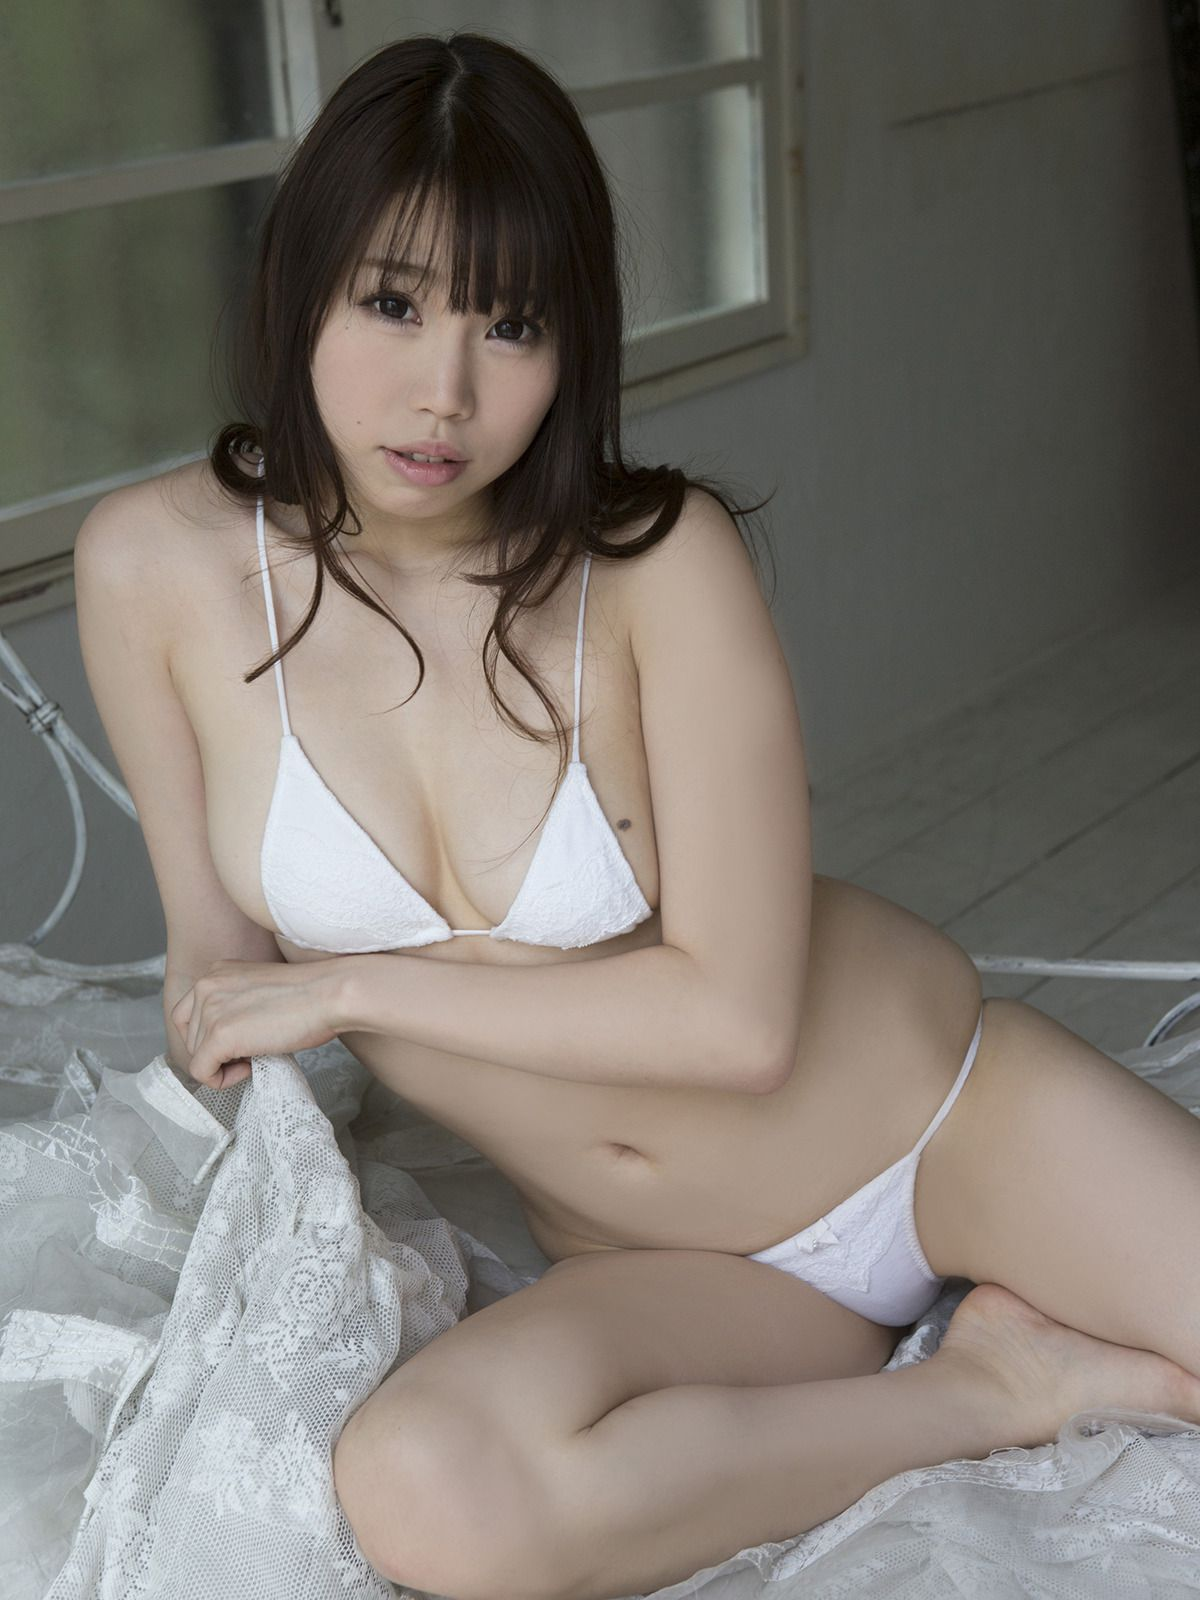 Mai Tsukamoto is naturally energized by the ample G breast012